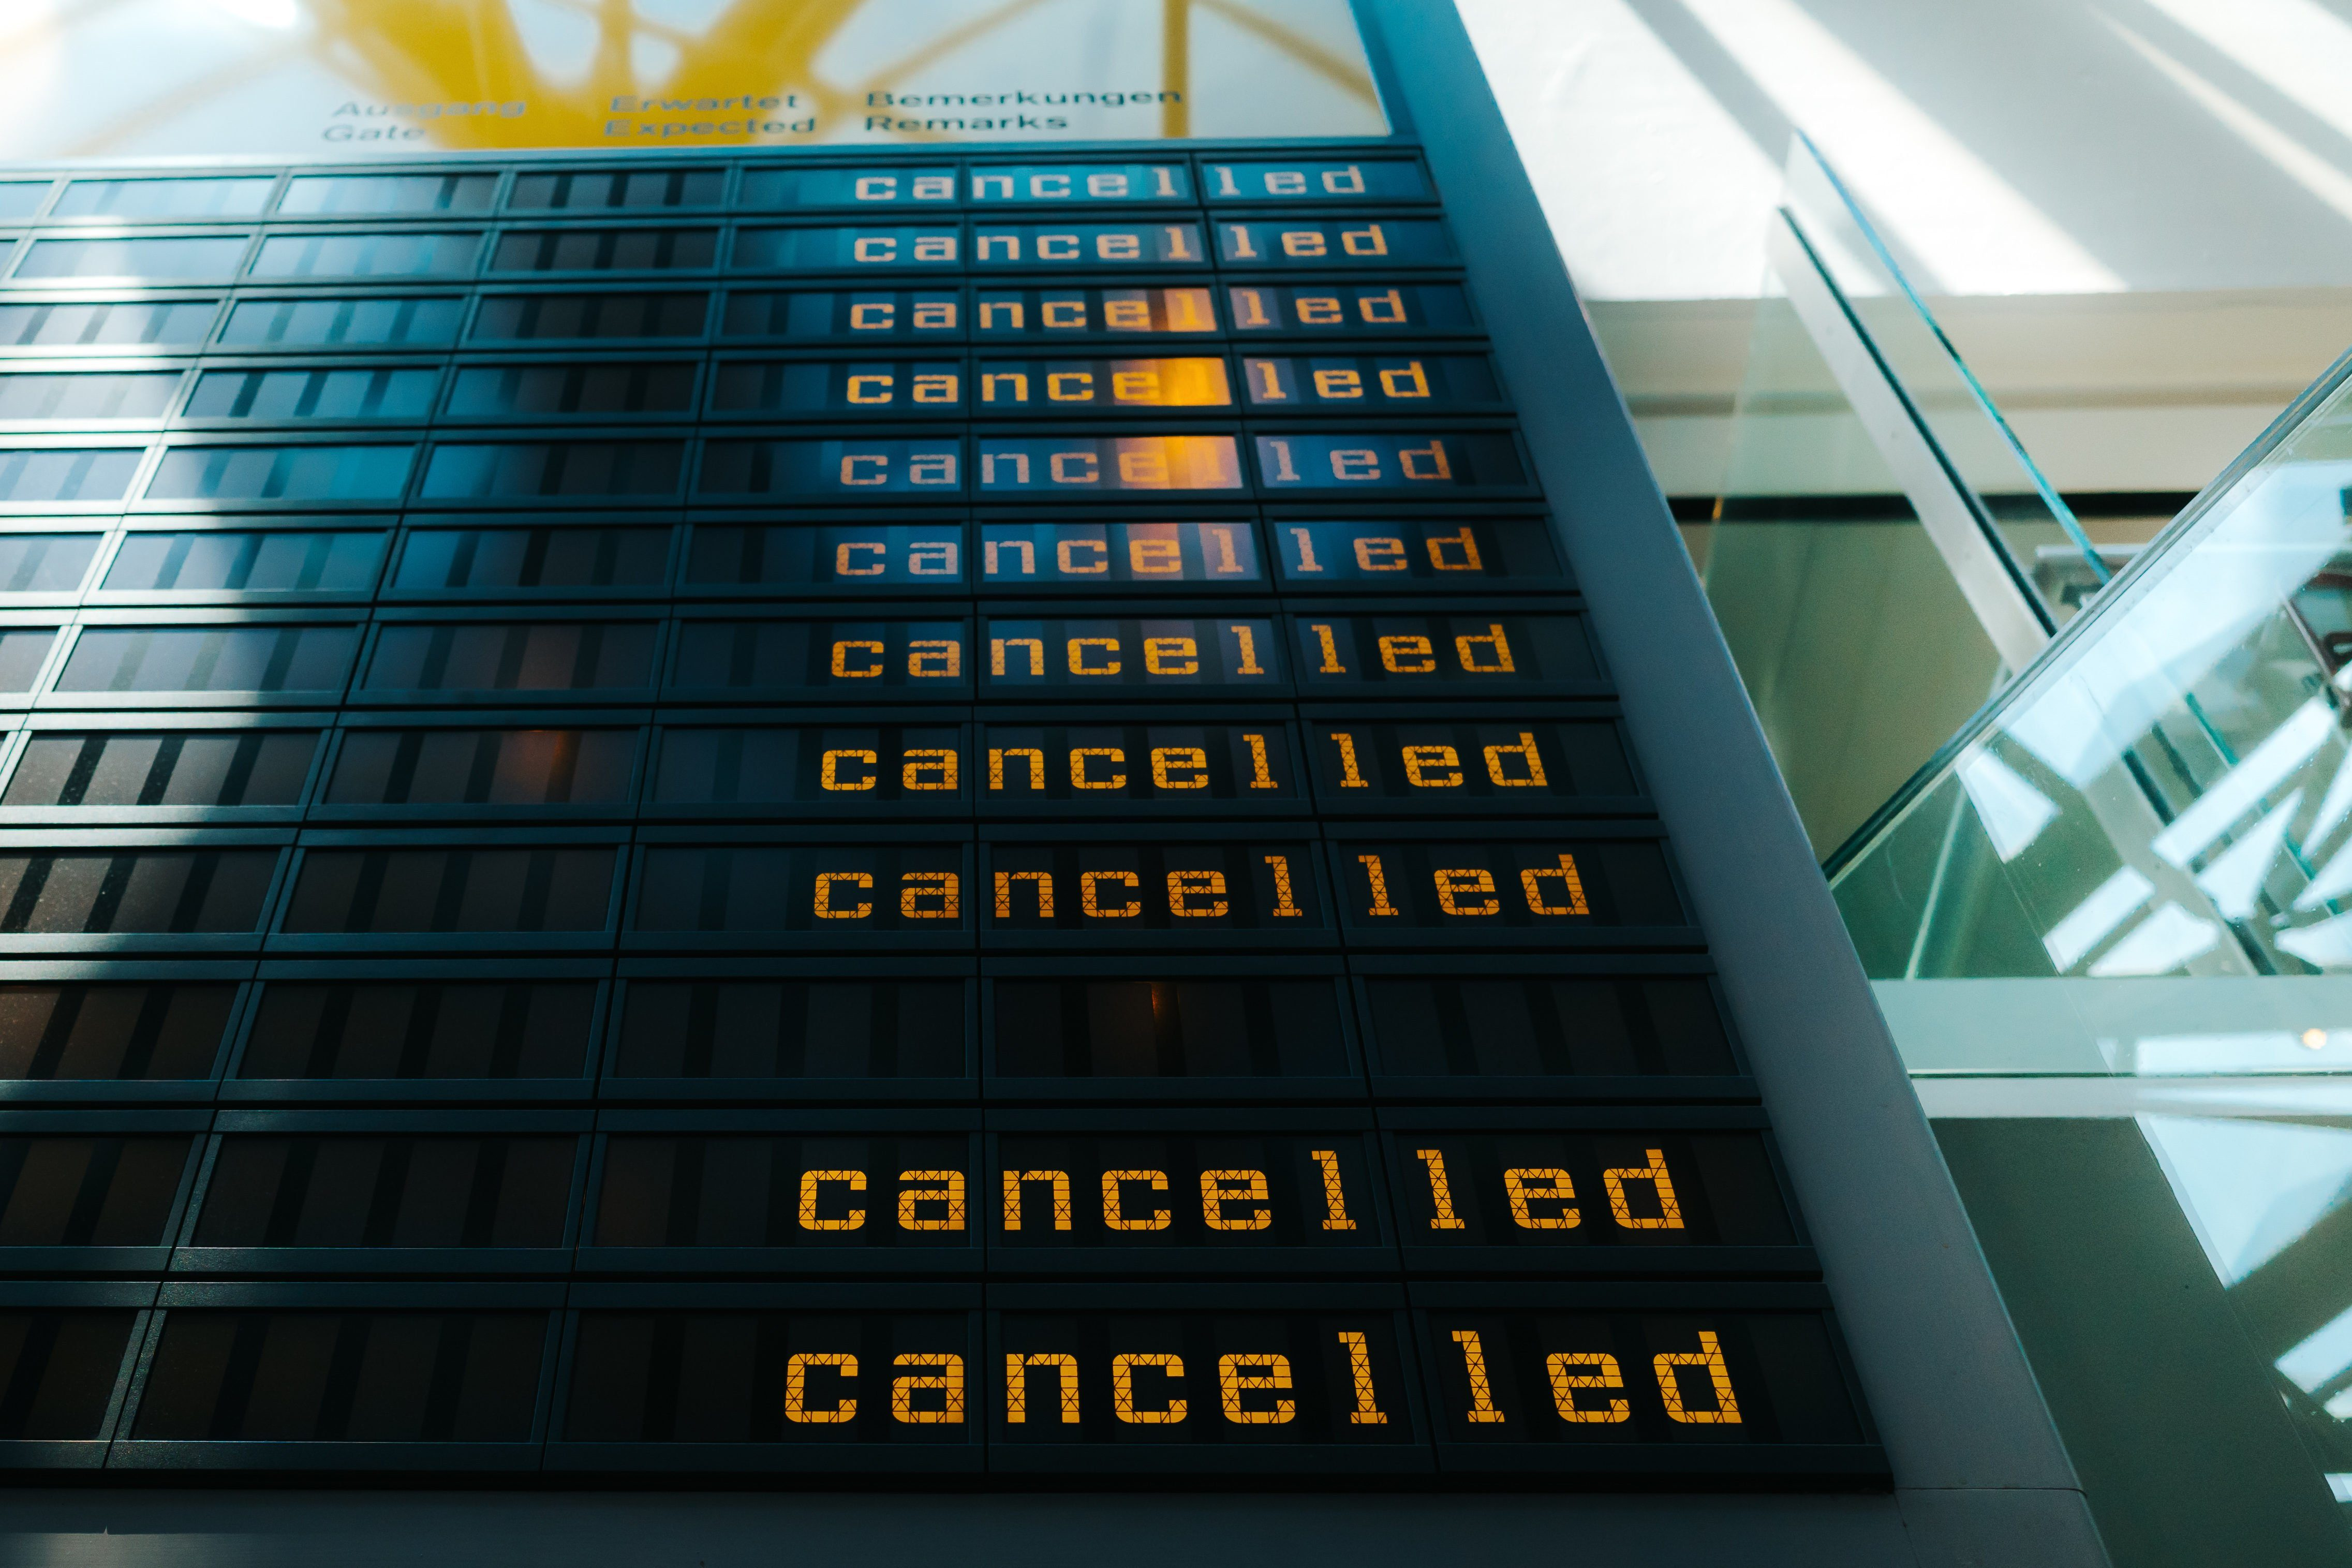 Cancelled Flights Are Shown On Display Panel At Berlin-Tegel Airport, Berlin, Germany